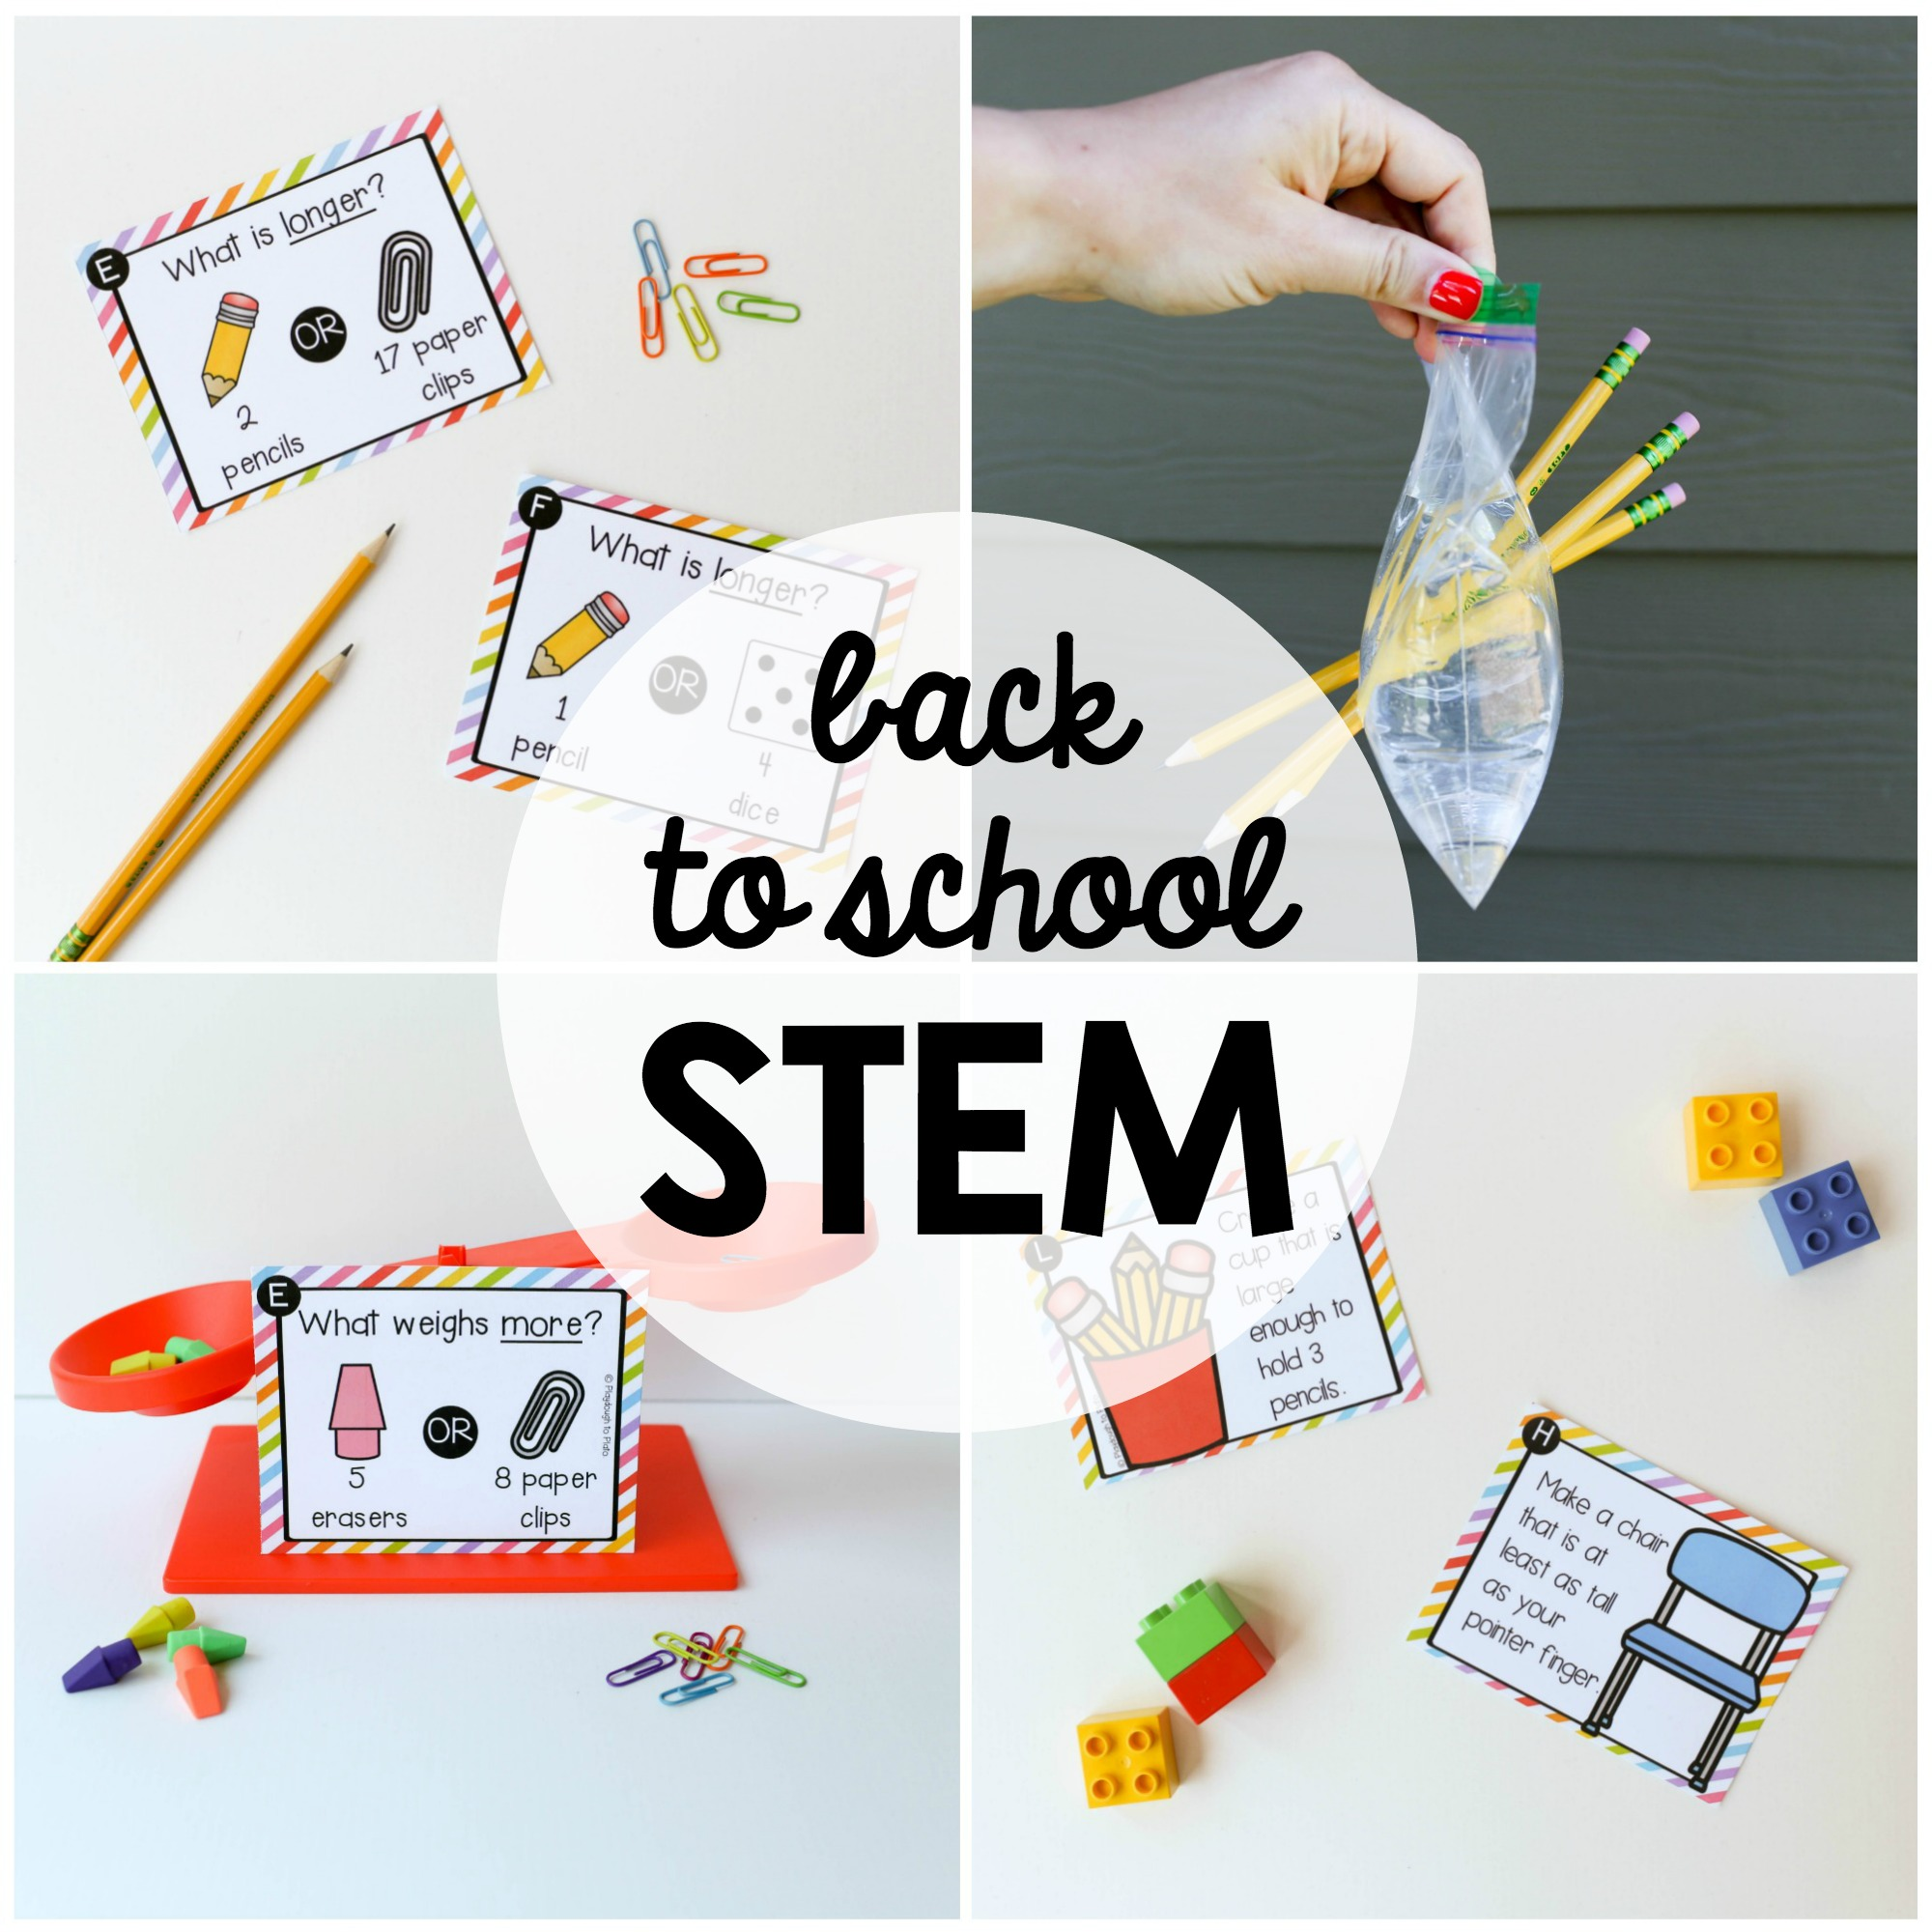 What Is Stem Lab In School: Back To School STEM Challenges